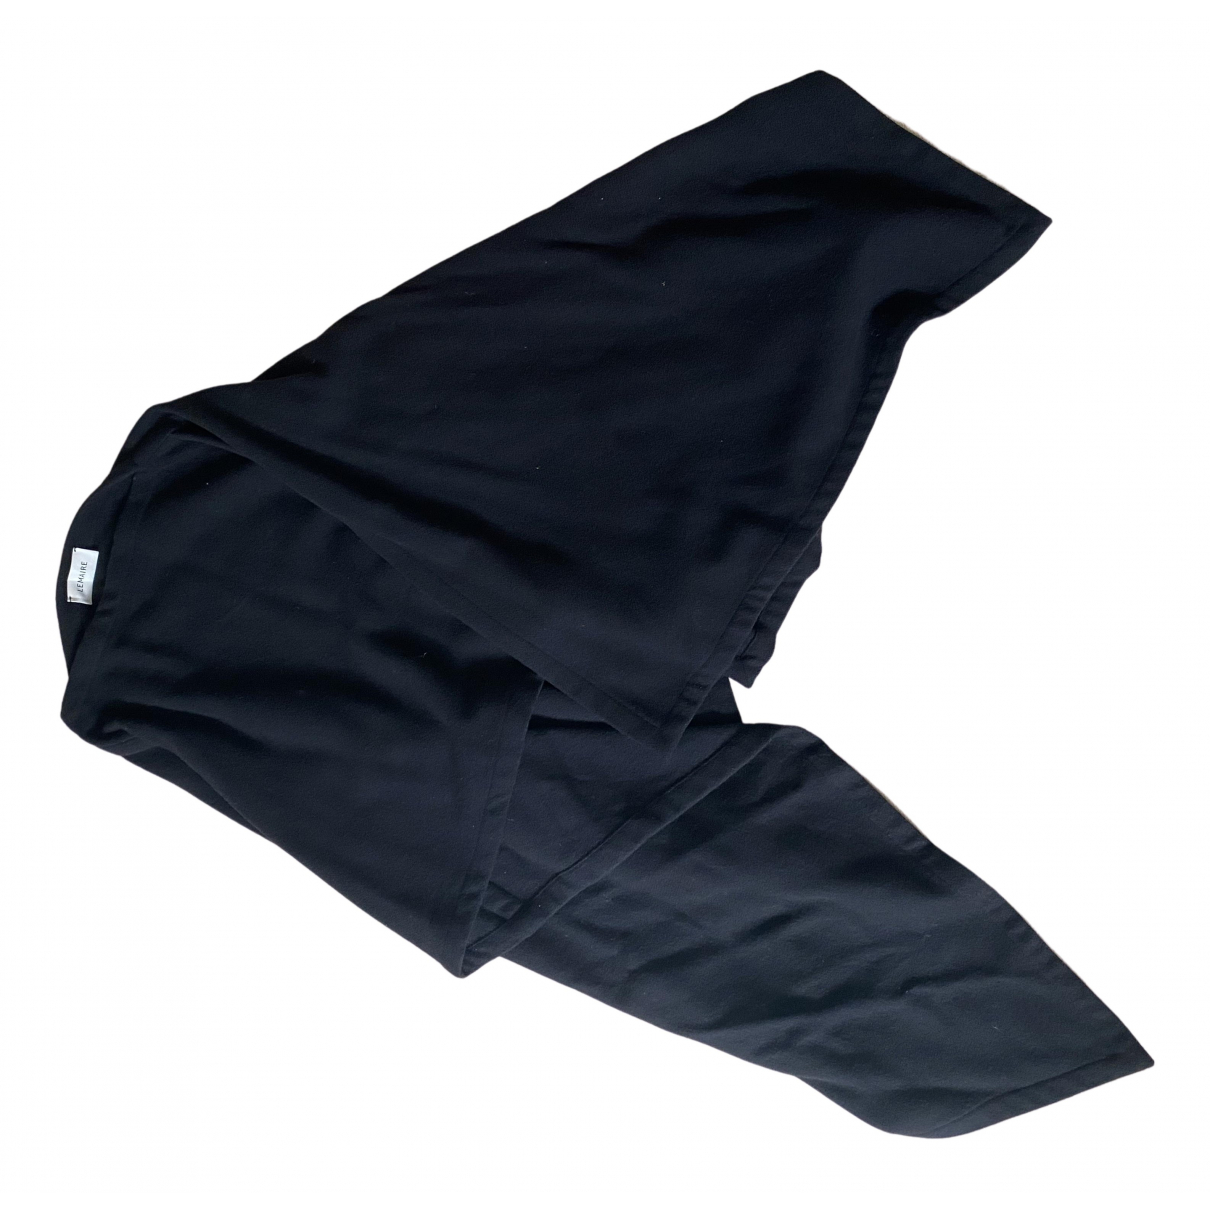 Lemaire \N Black Wool scarf for Women One Size FR